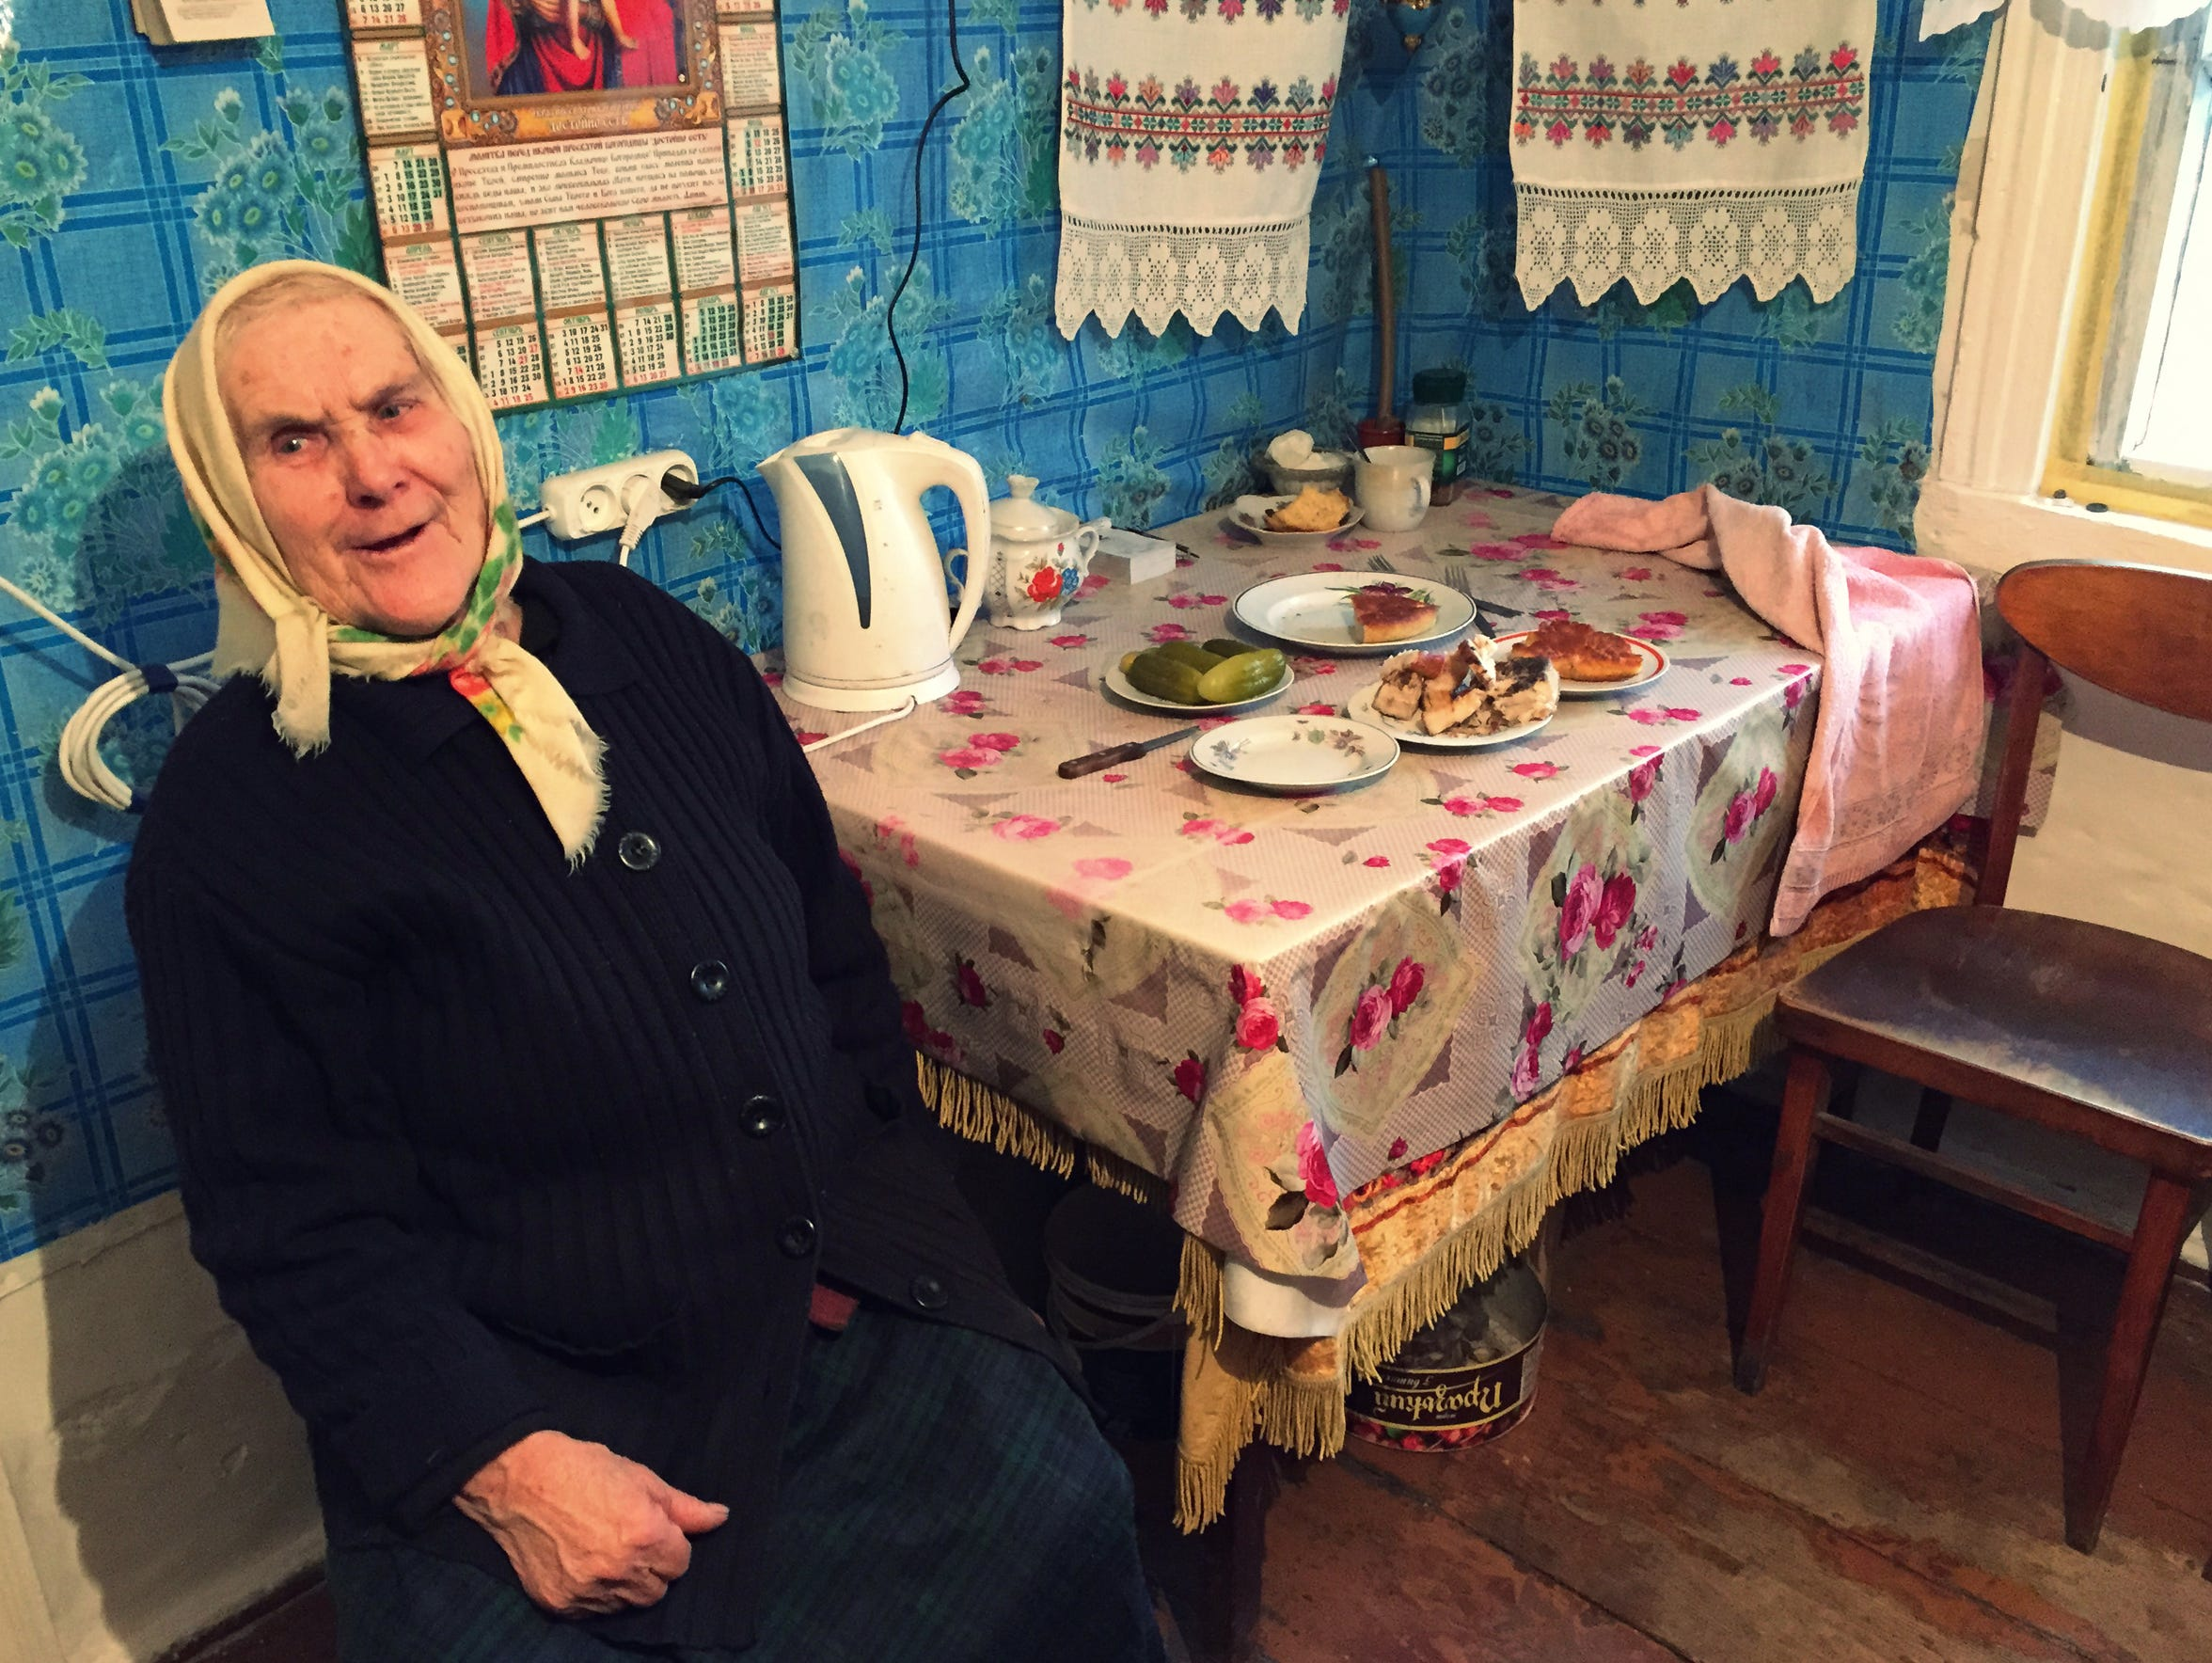 Ganay Zavorotnya sits next to a table insider her home